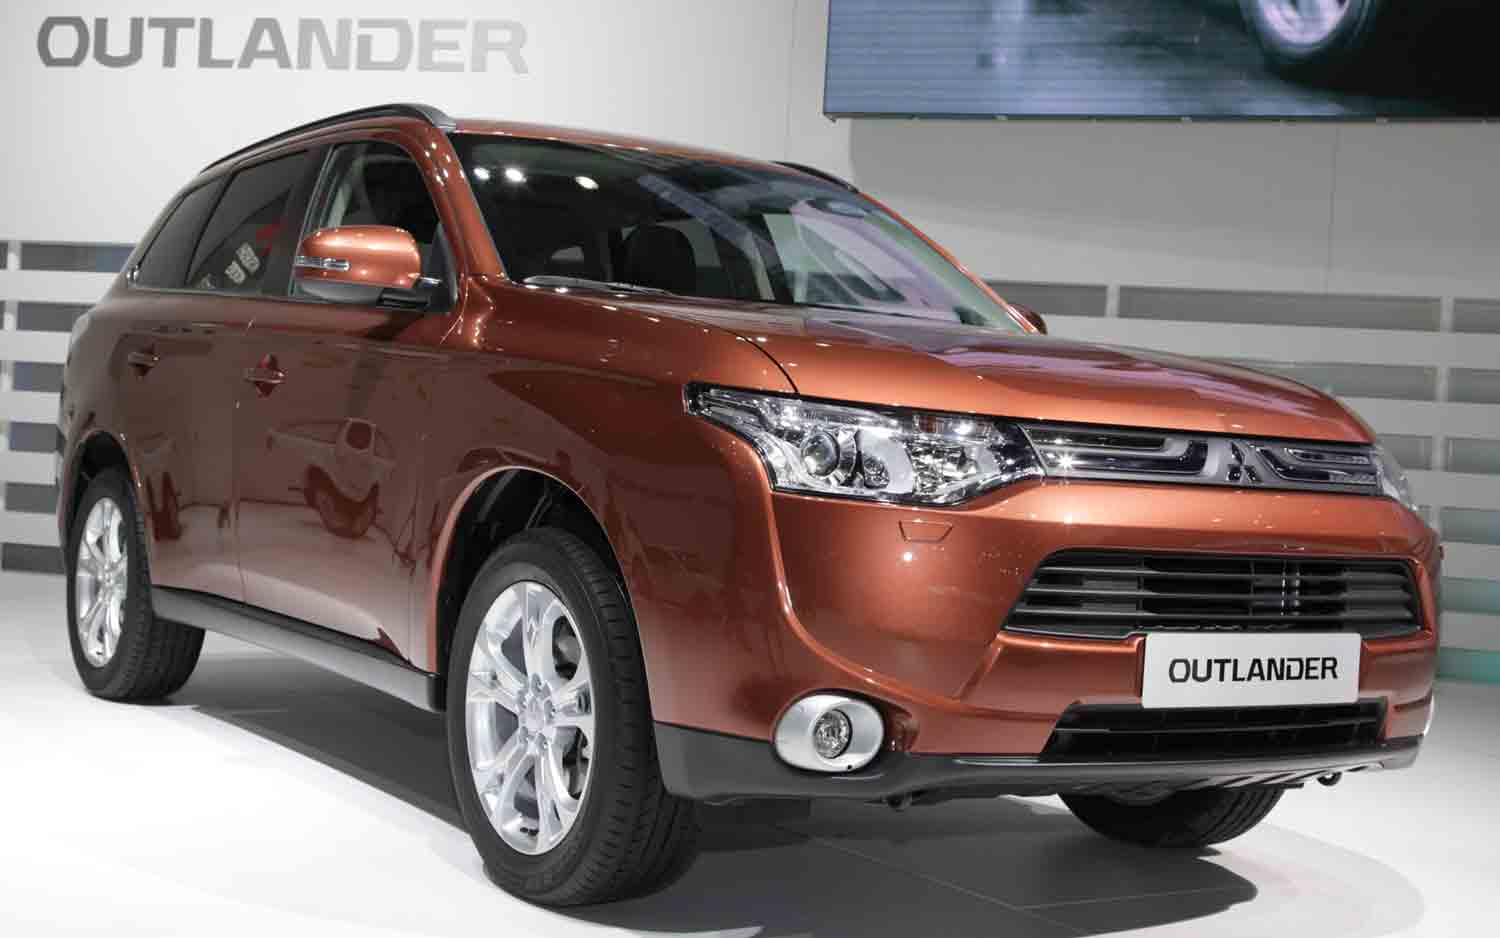 2013 Mitsubishi Outlander Front Three Quarters View 2 11